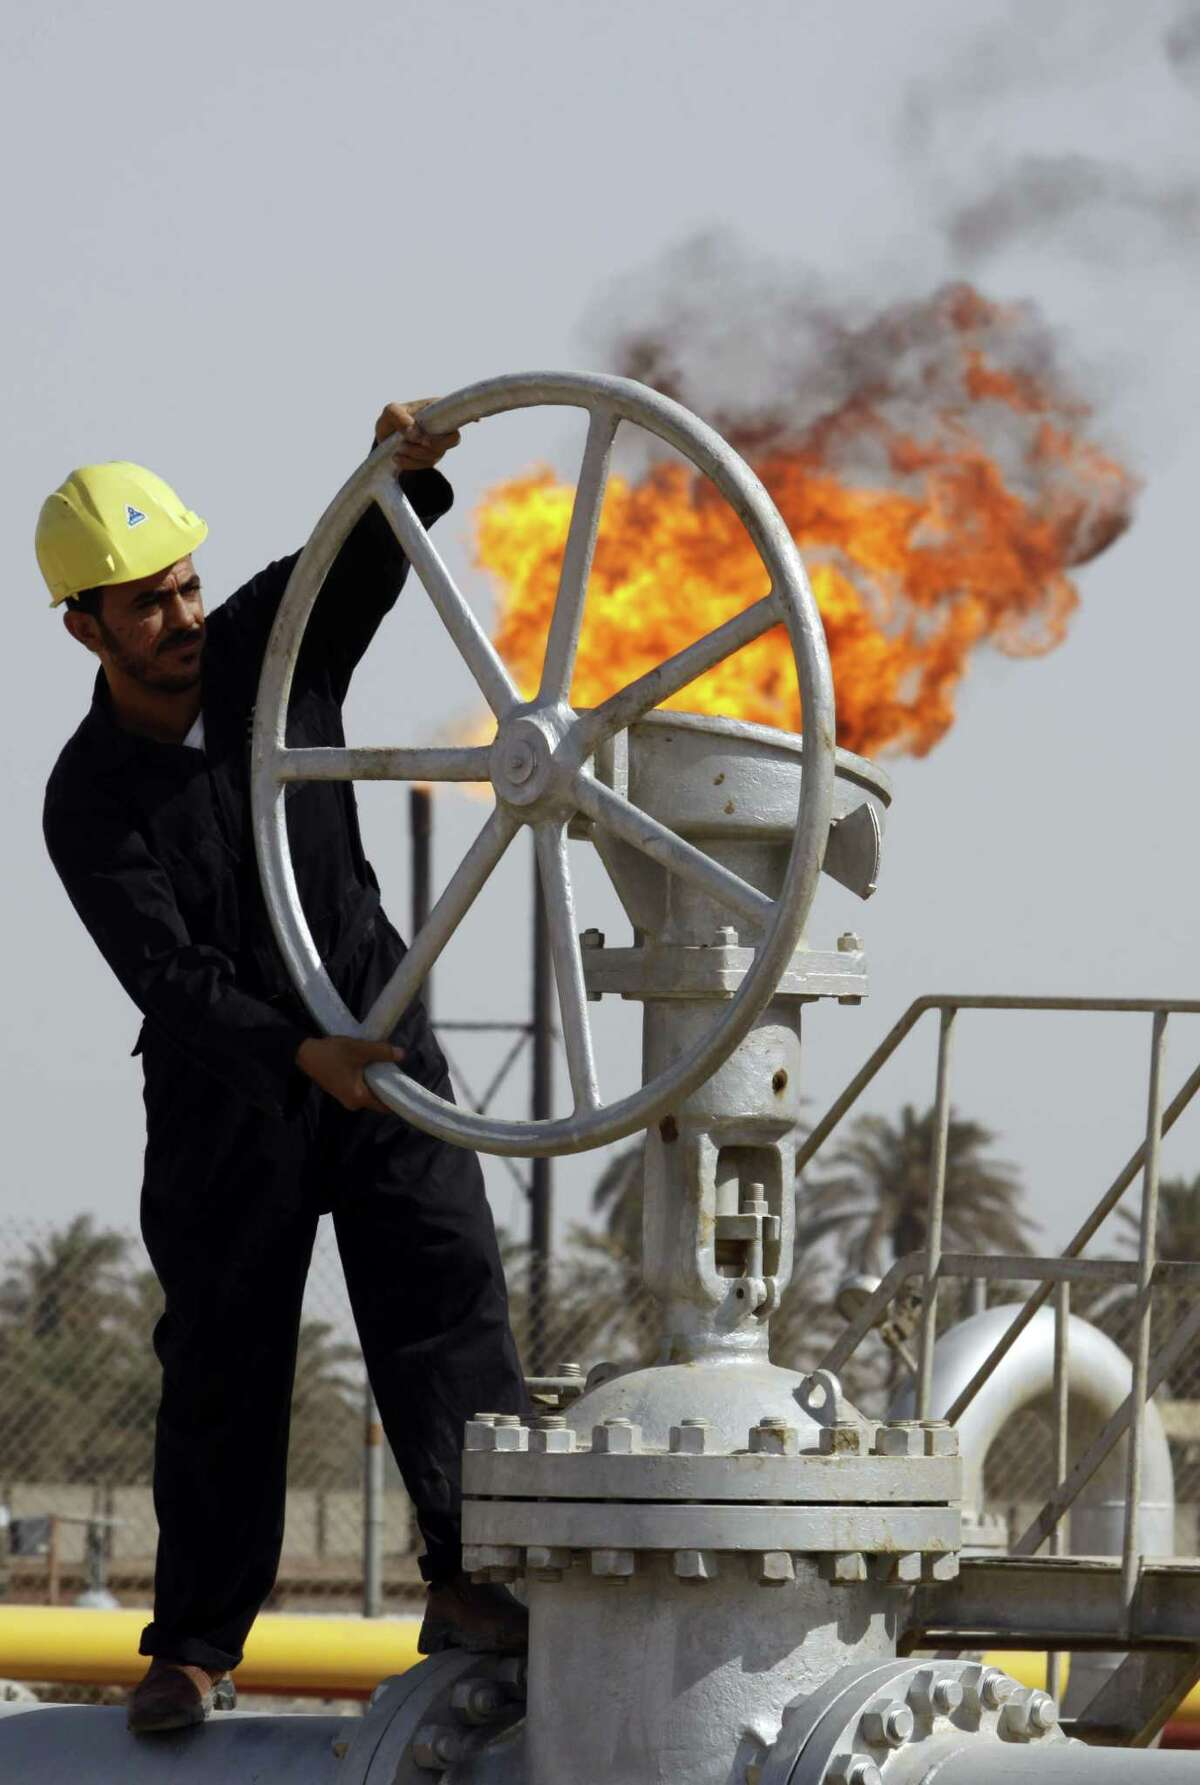 FILE - In this Friday, July 17, 2009 file photo, an Iraqi worker operates valves at the Nahran Omar oil refinery near the city of Basra, 340 miles (550 kilometers) southeast of Baghdad, Iraq. Oil-producing countries are to meet in Qatar on Sunday, April 17, 2016, to discuss a plan to freeze output but their gathering comes as nations like Iran rapidly ramp up their pumping. (AP Photo/Nabil al-Jurani, File)